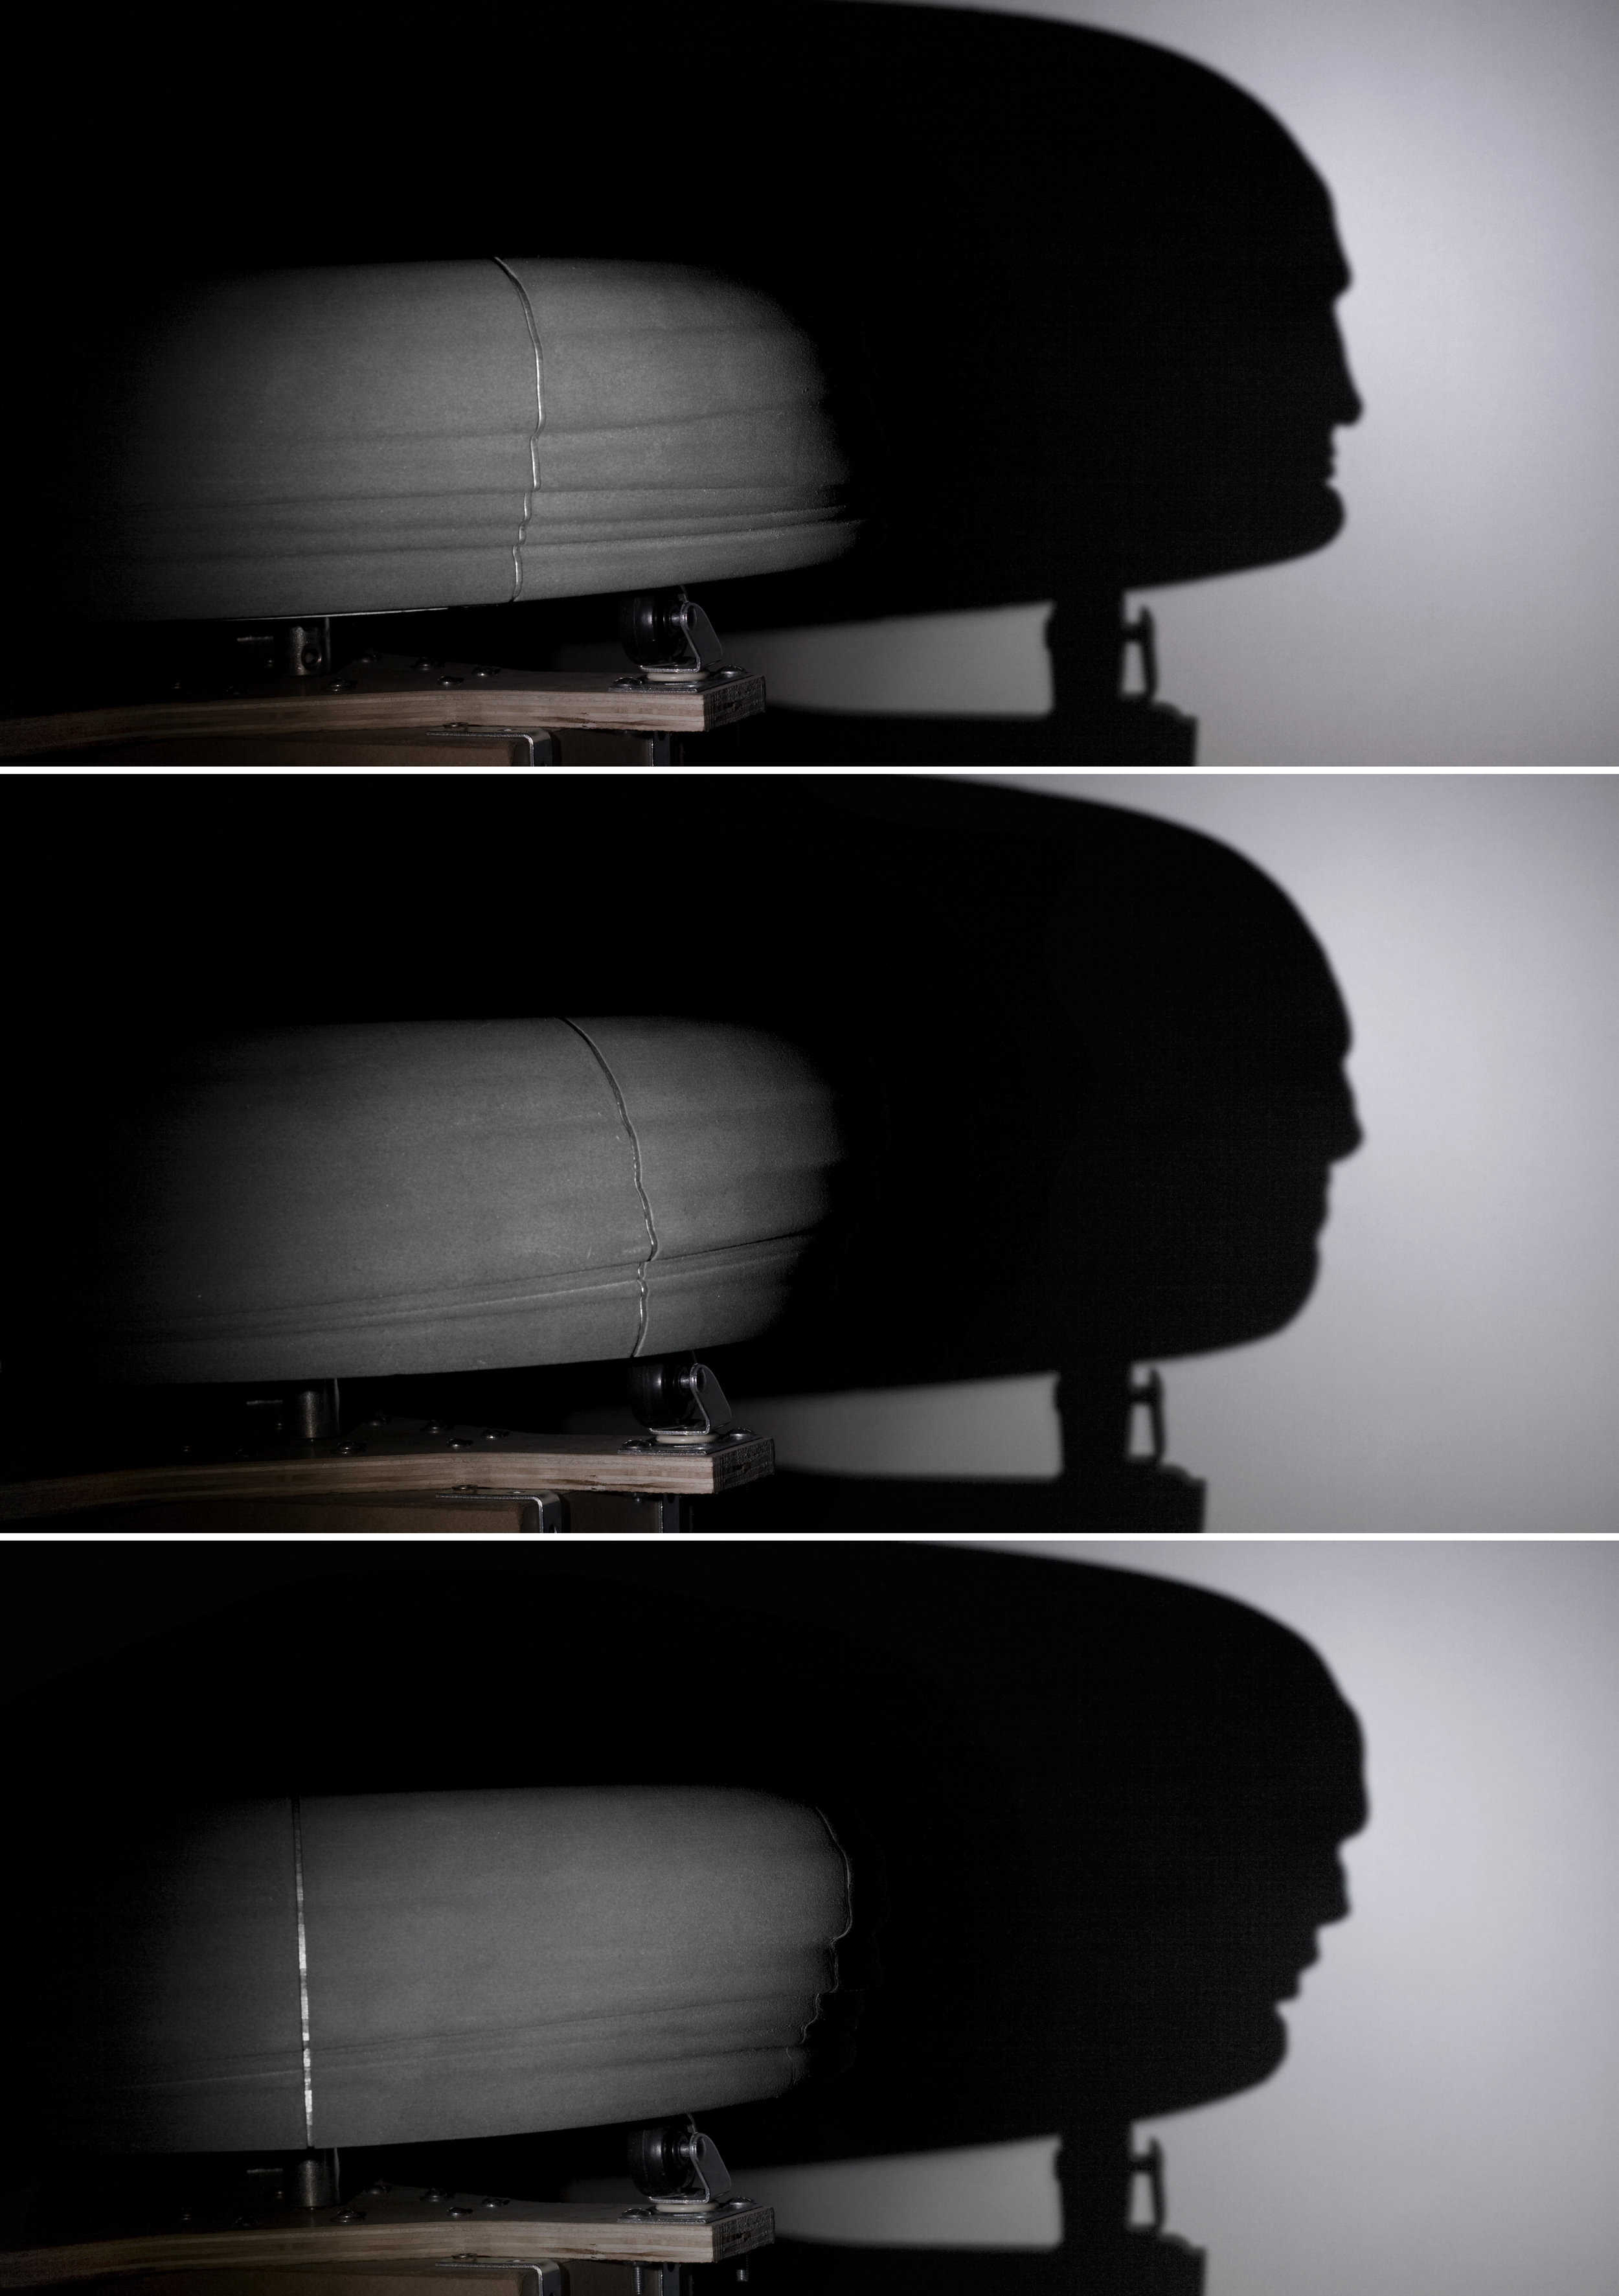 A spotlight aimed at the rotating profile edge creates a morphing face shadow